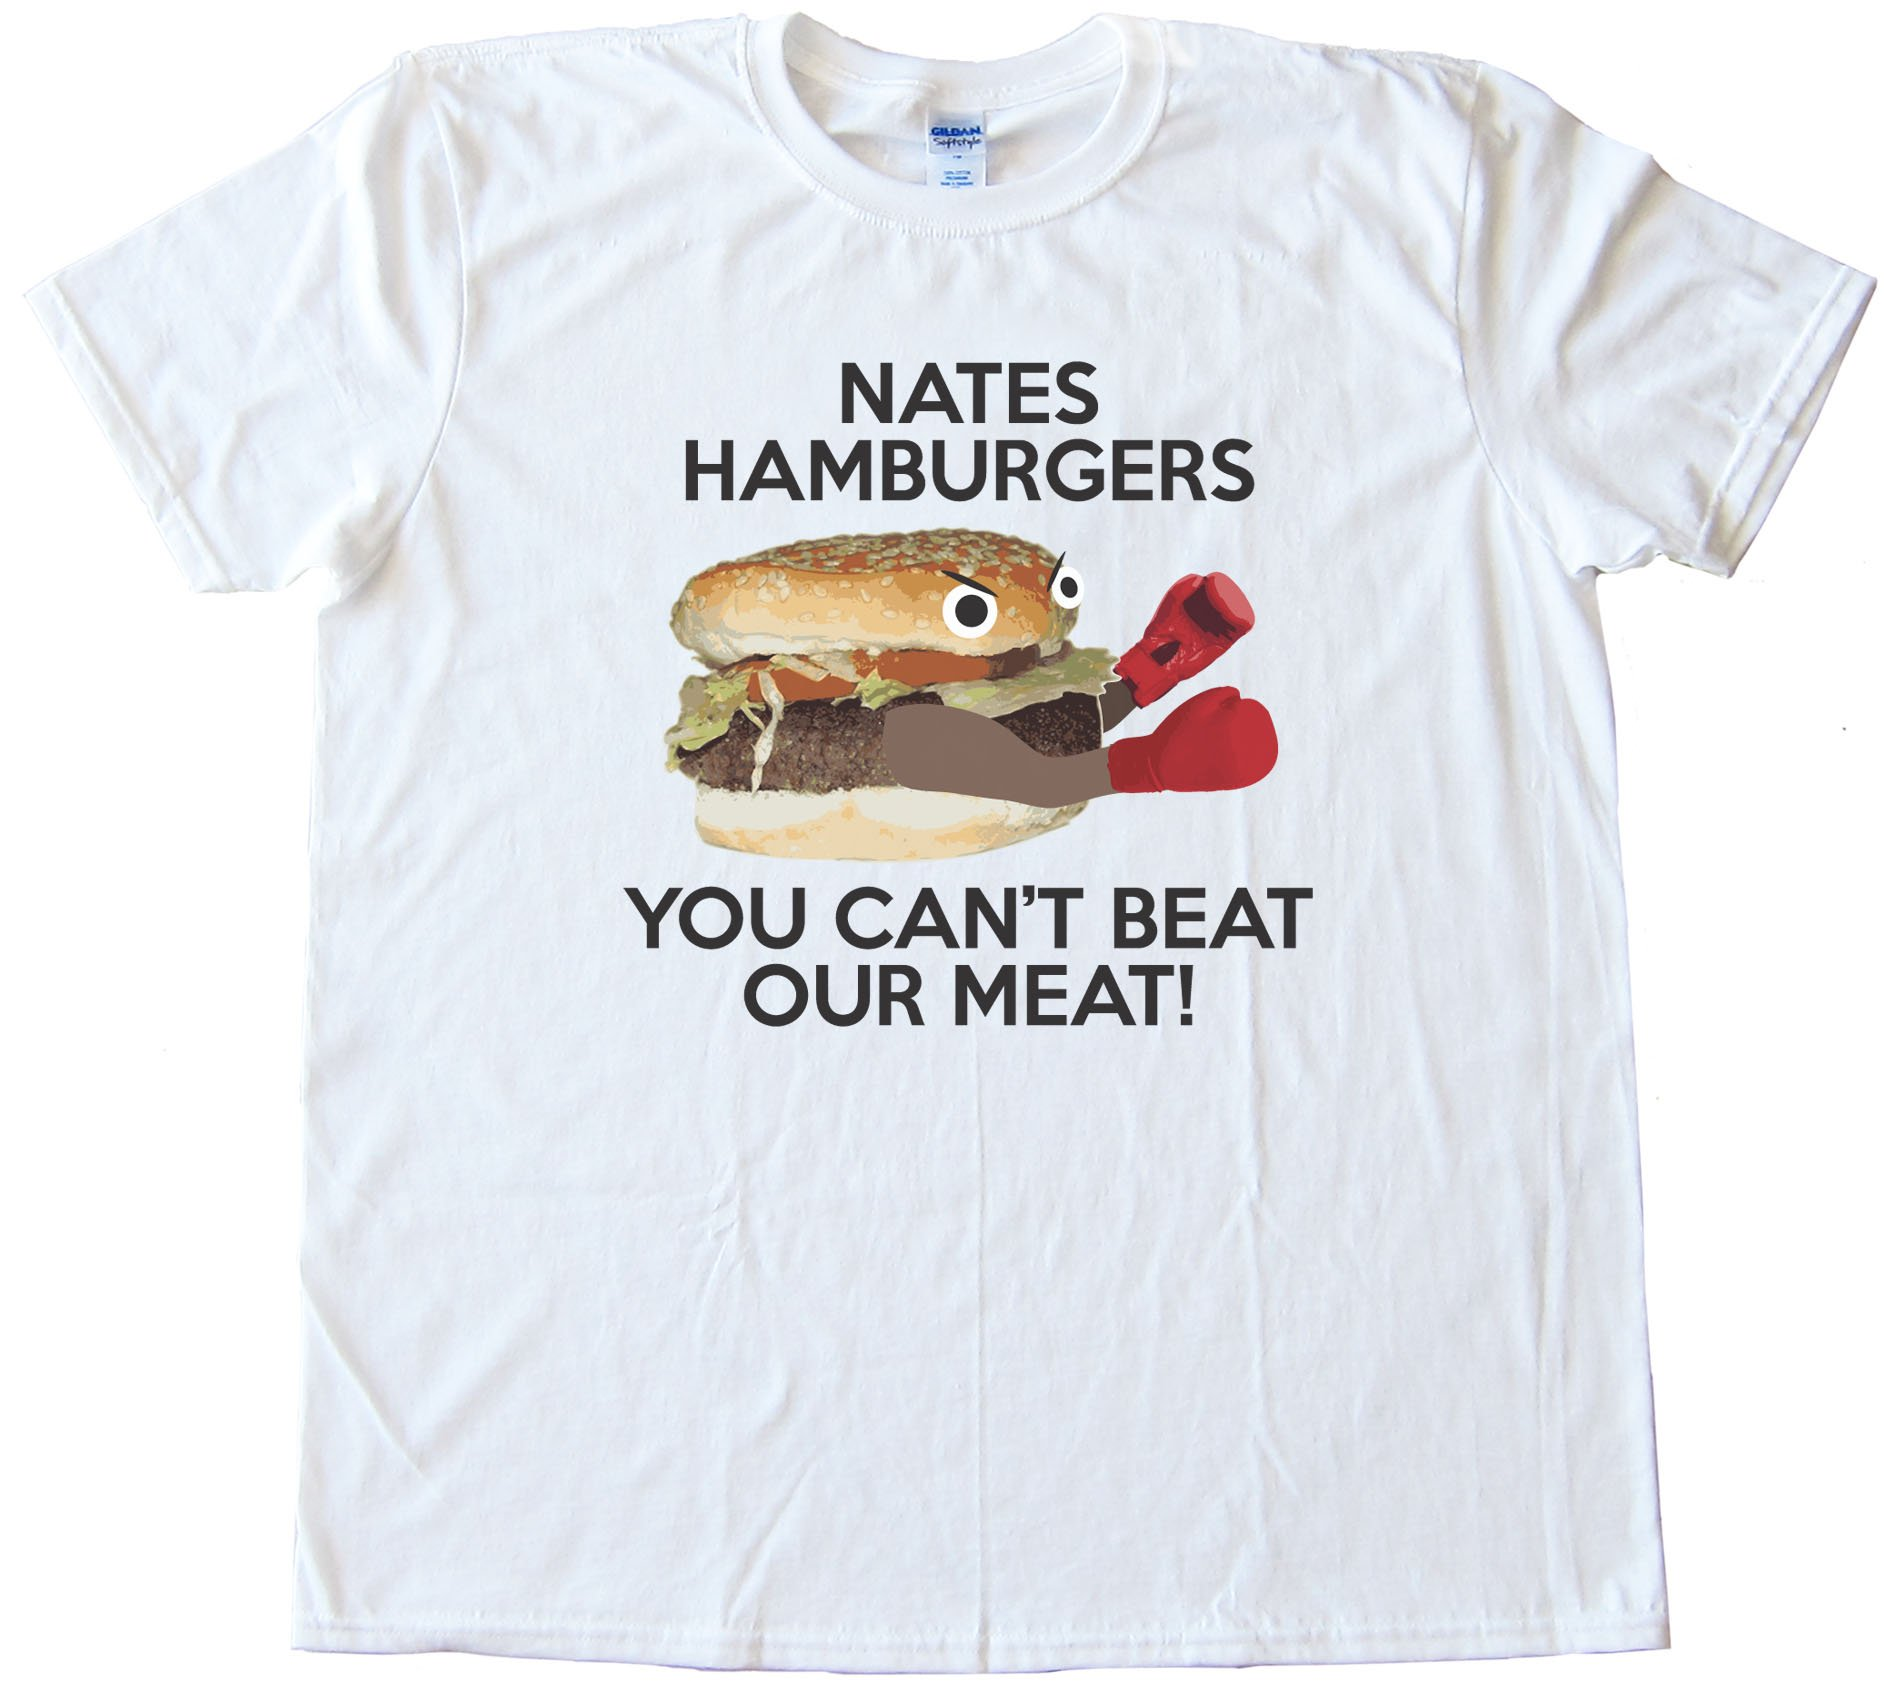 Nates Hamburgers - You Cant Beat Our Meat! Tee Shirt